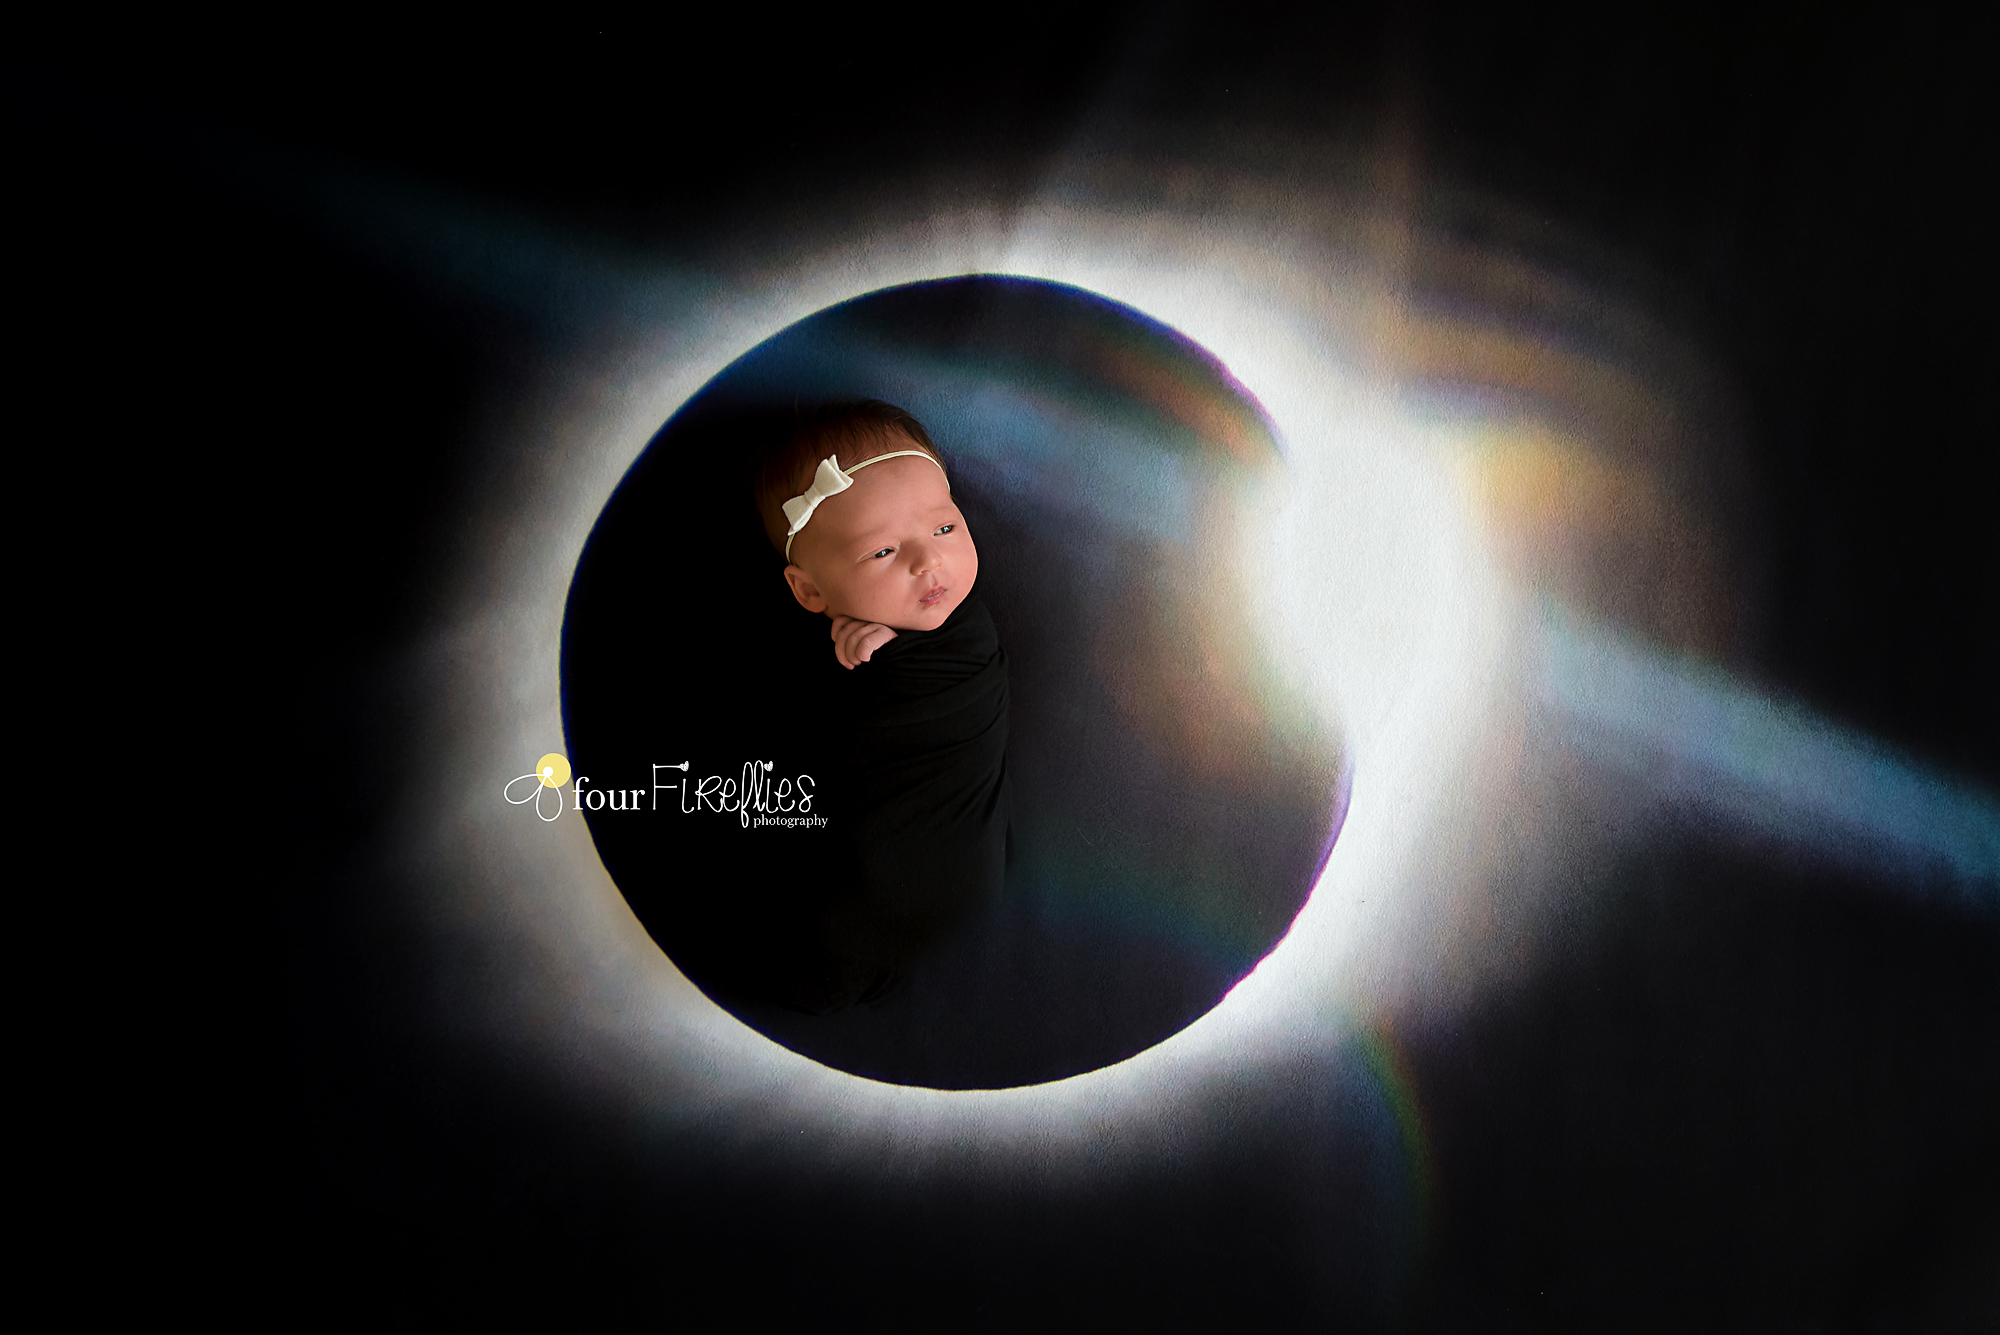 st-louis-newborn-photographer-four-fireflies-photography-baby-born-during-eclipse-on-picture-of-totality.jpg